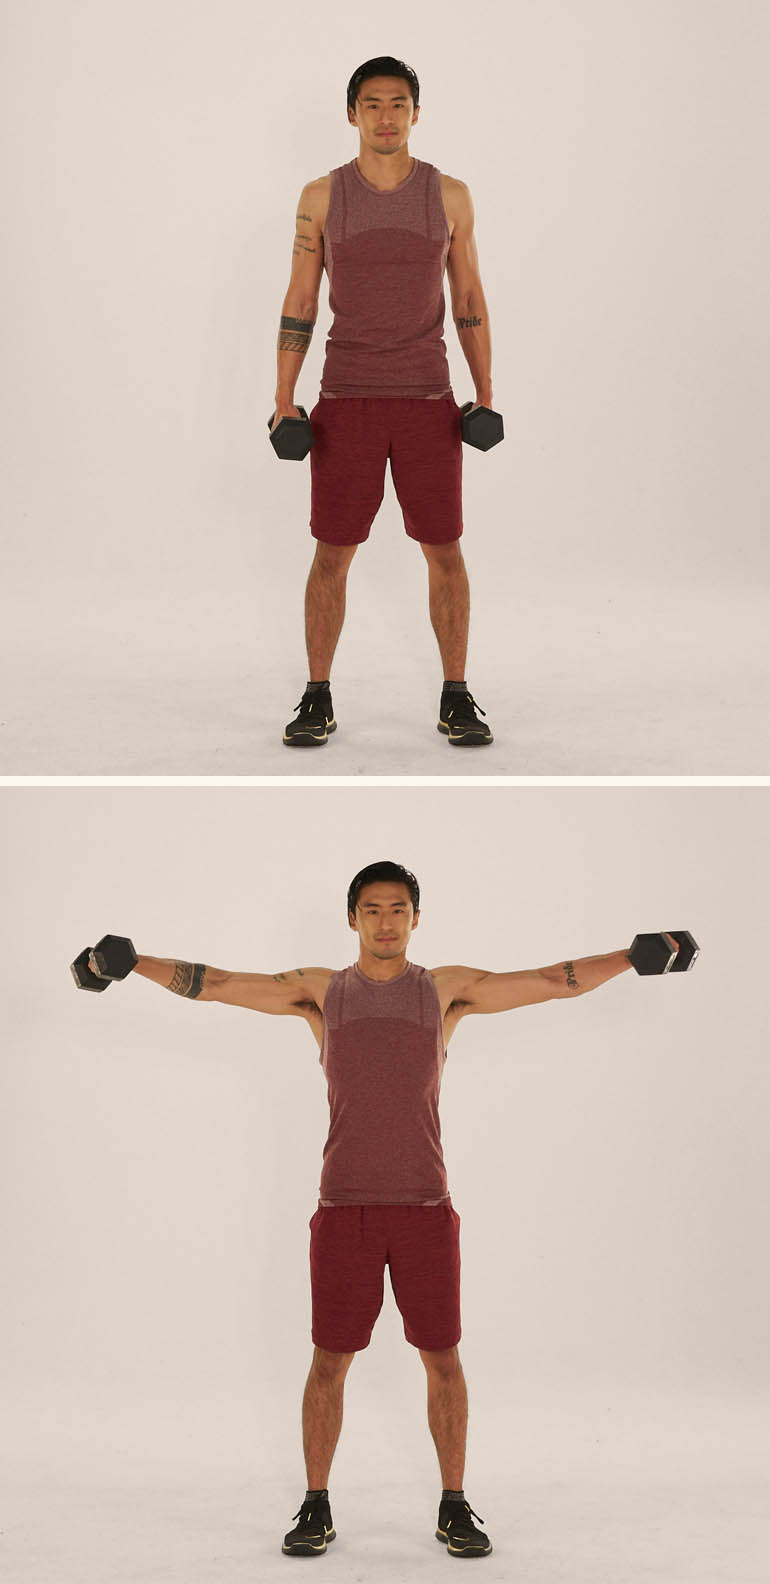 lateral raise demonstration | hourglass figure